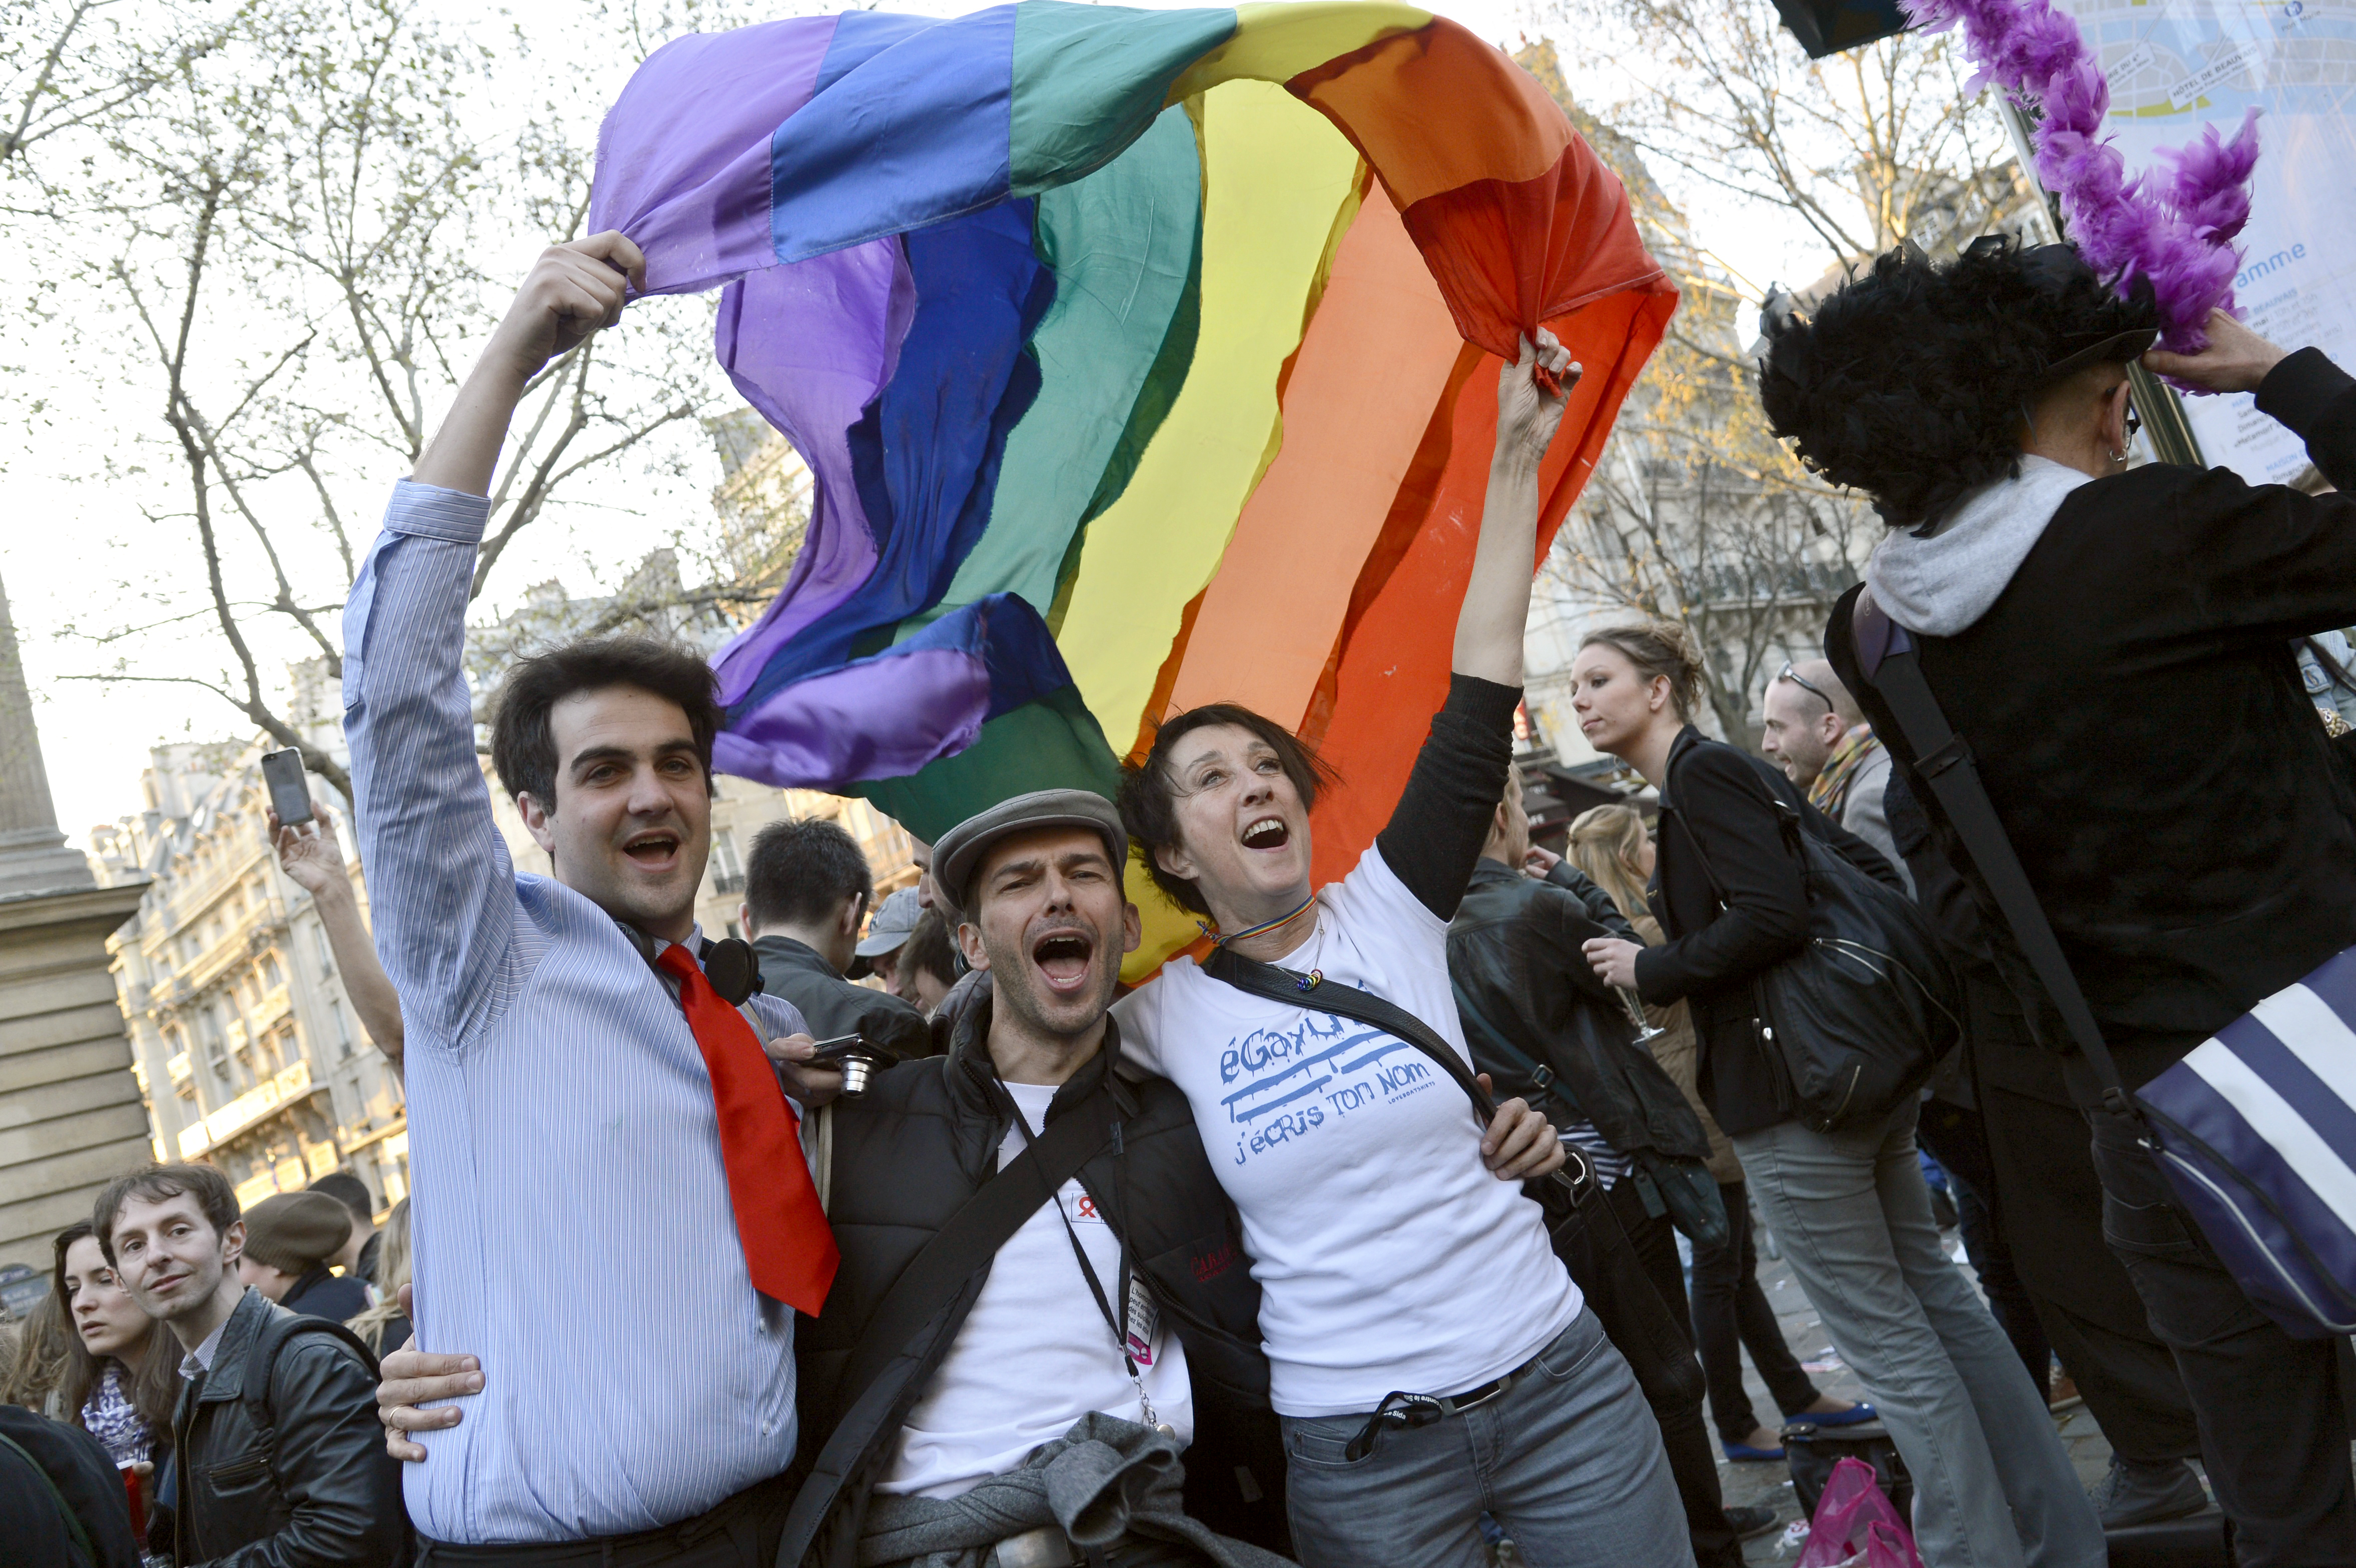 say yes to homosexual marriage Australians vote overwhelmingly in favor of same-sex marriage in a national survey, paving the way for legislation to make the country the 26th nation to formalize the unions and sparking colorful celebrations.